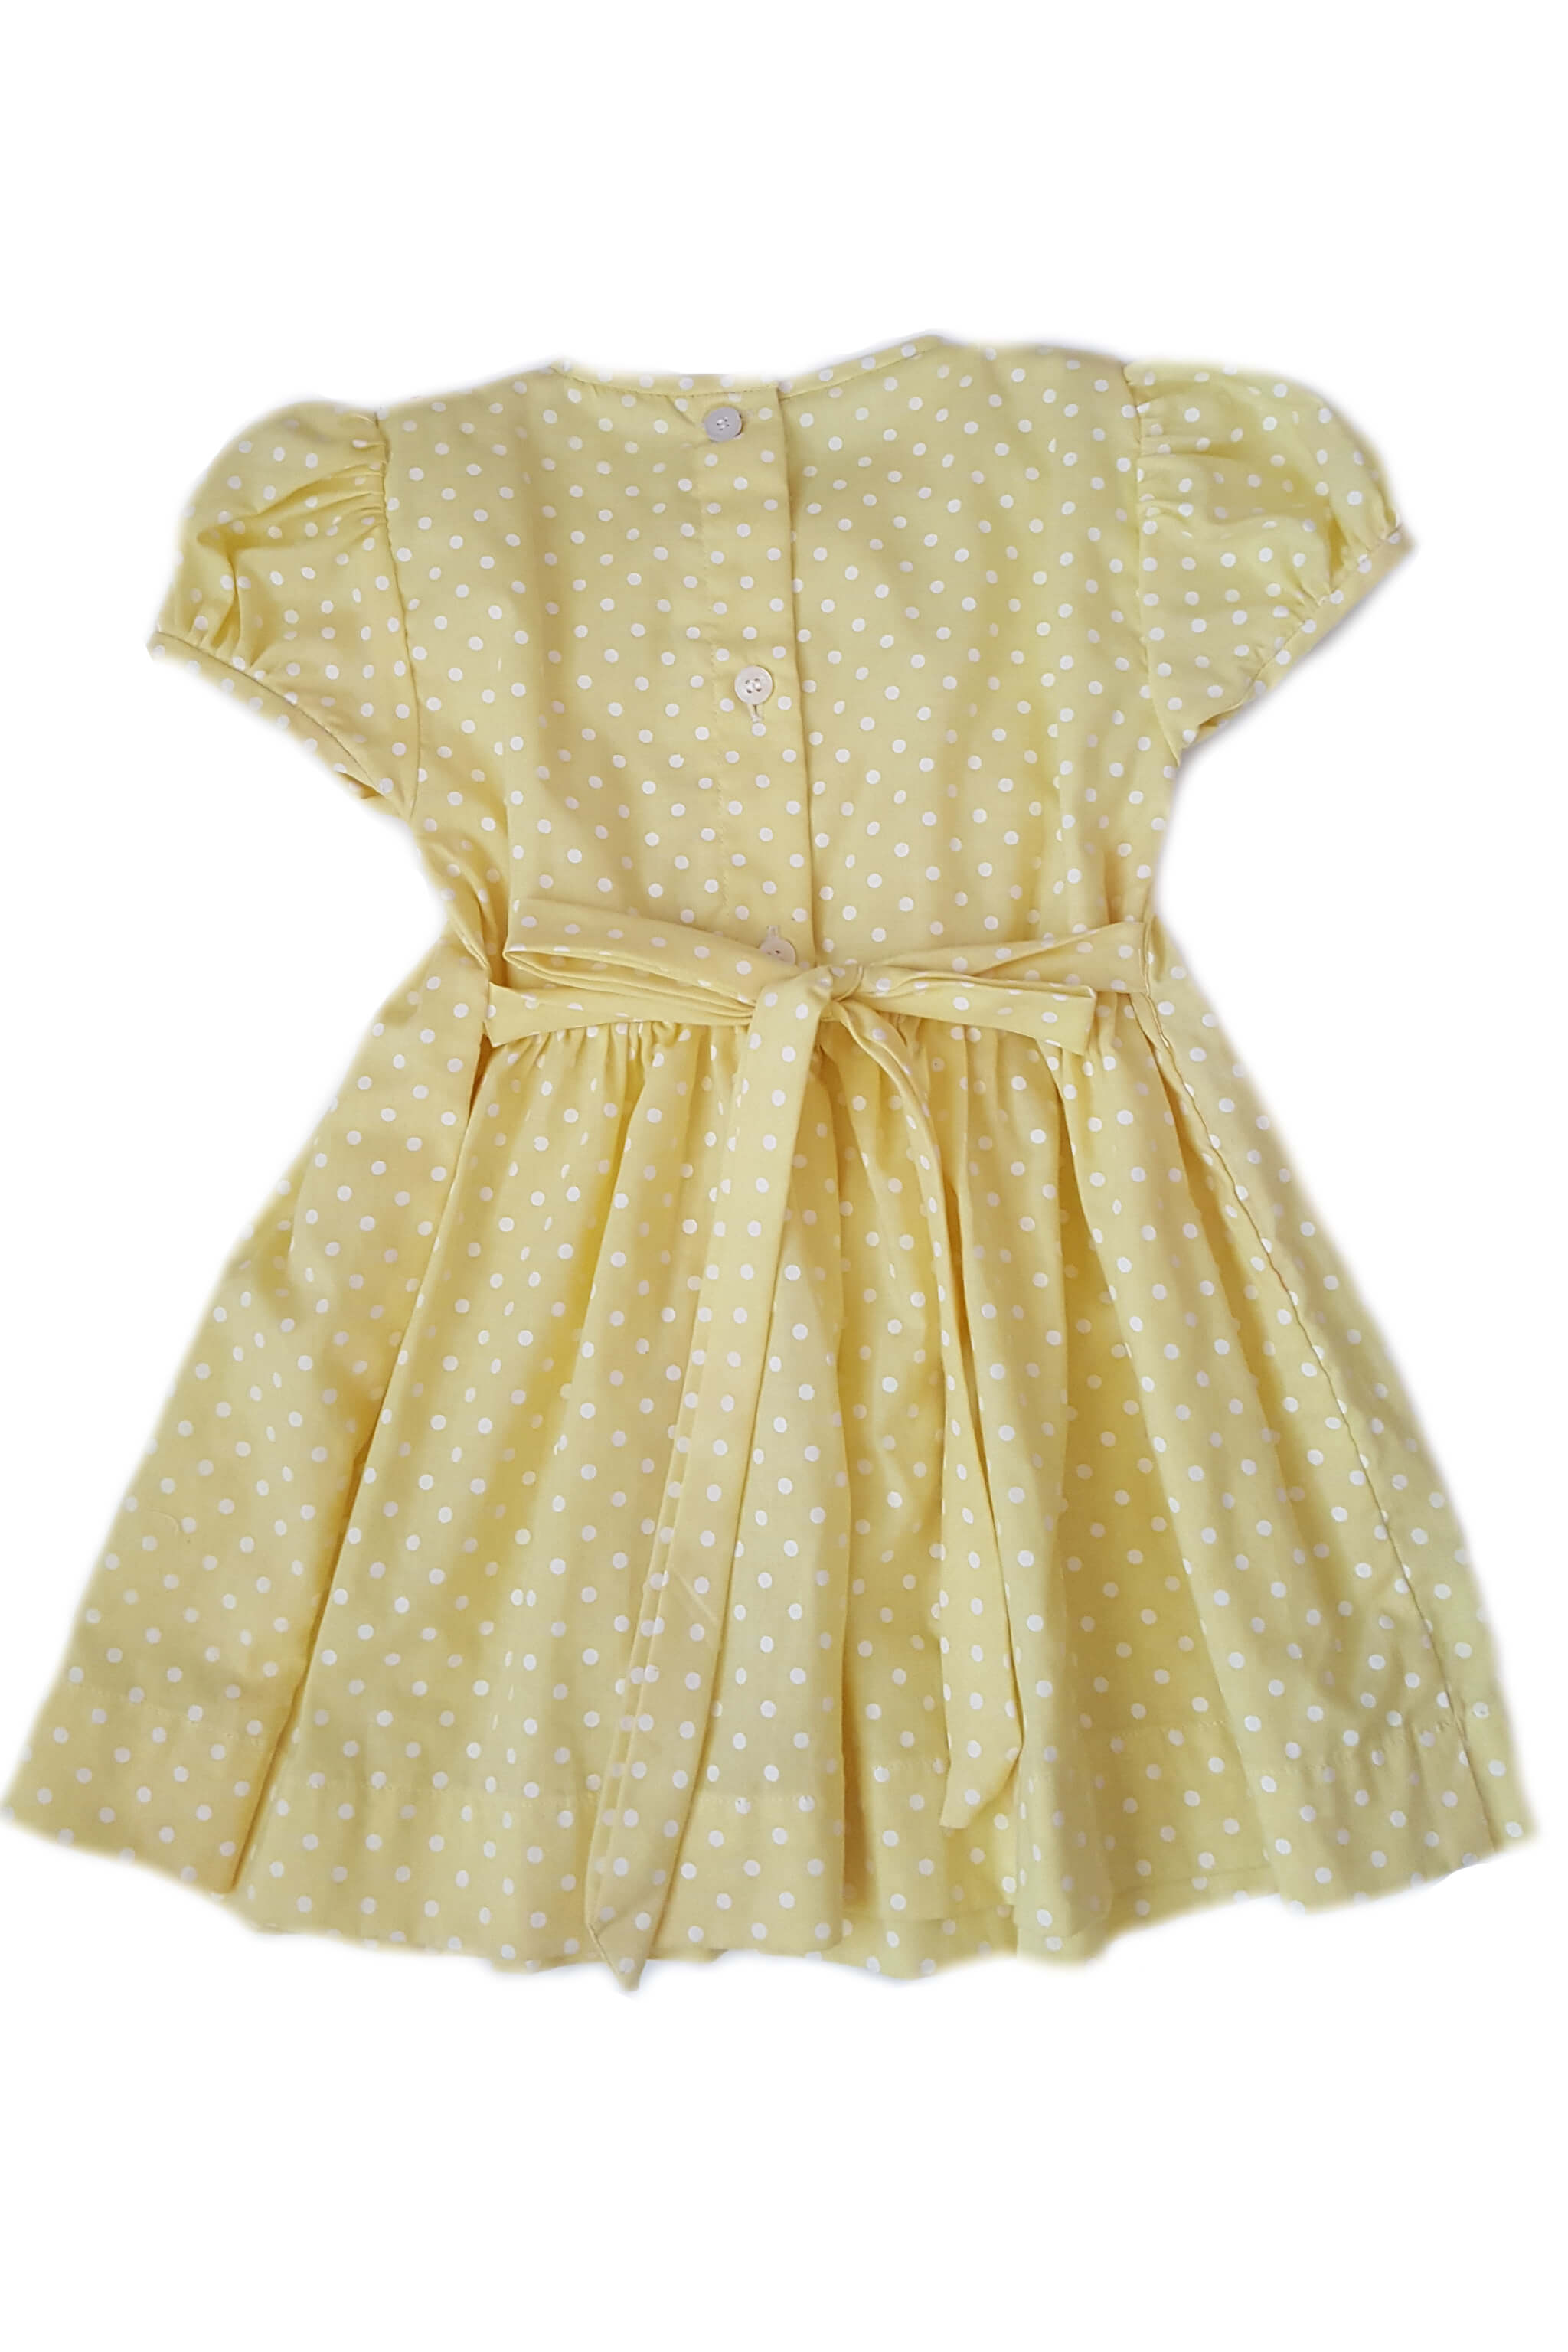 Back of yellow pin dot dress with hand-smocked bodice and white square collar with hand-embroidered orange rosettes with button back and sash for baby girls